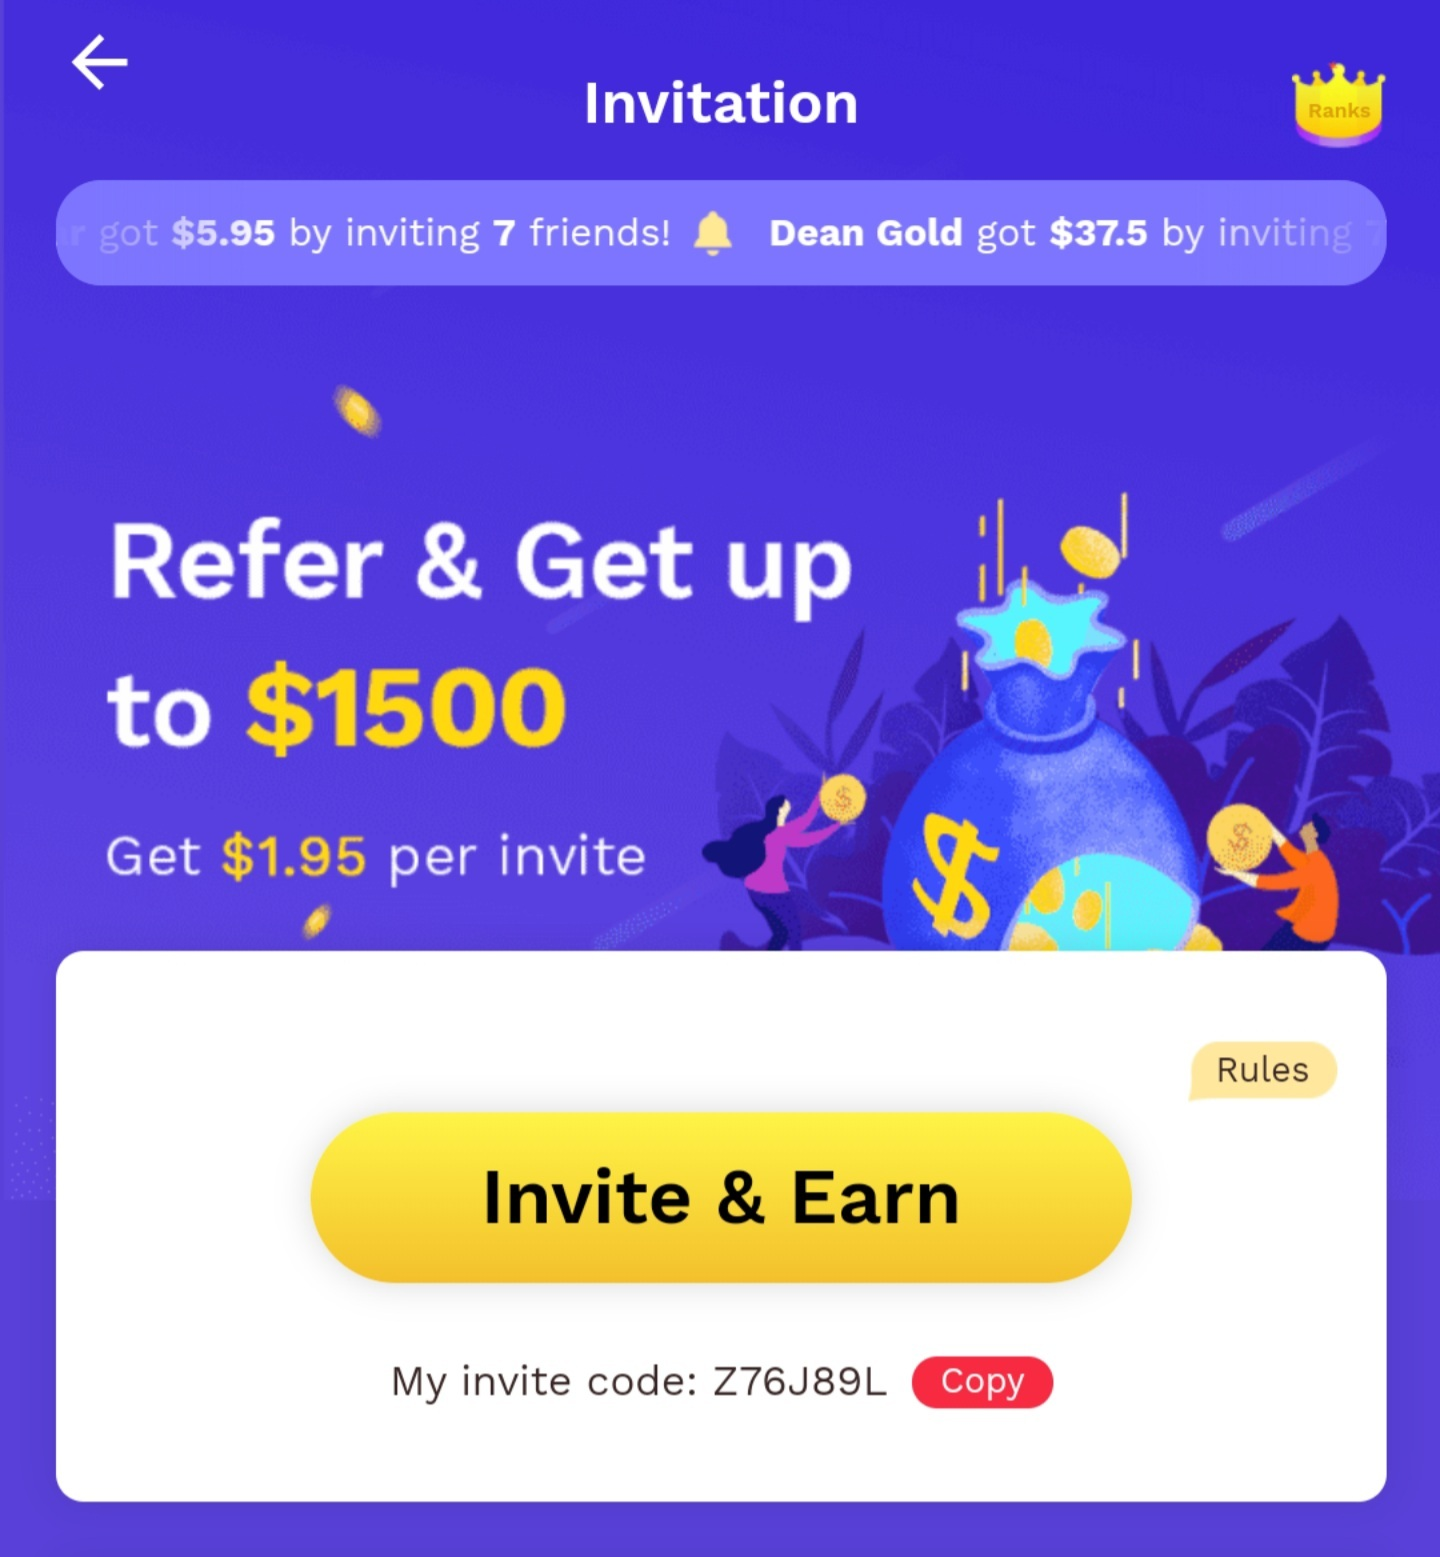 Refer & Get Up To $1500